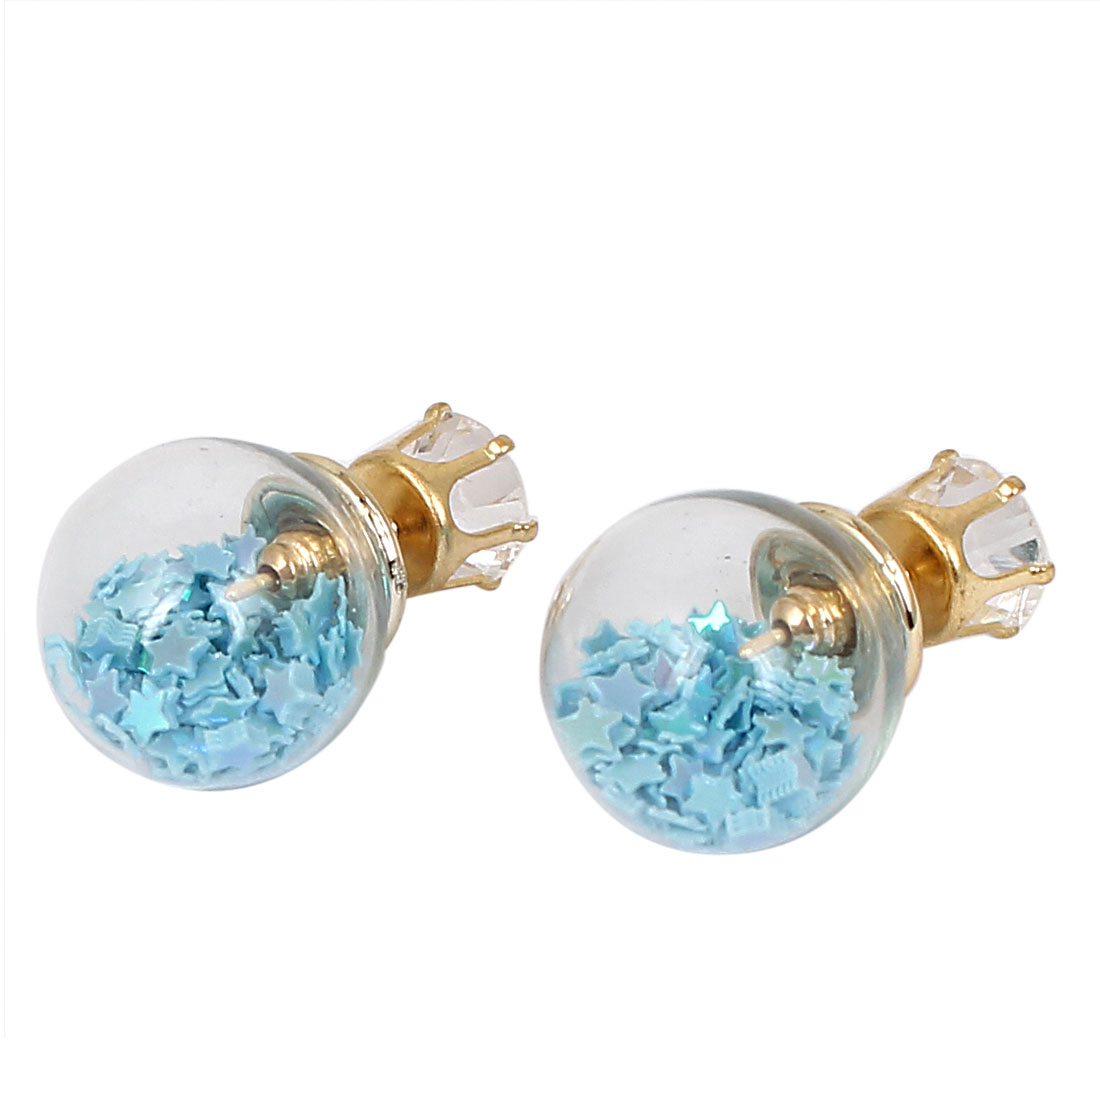 Women Faux Crystal Inlaid Round Bulb Design Double Side Stud Earrings Blue Pair